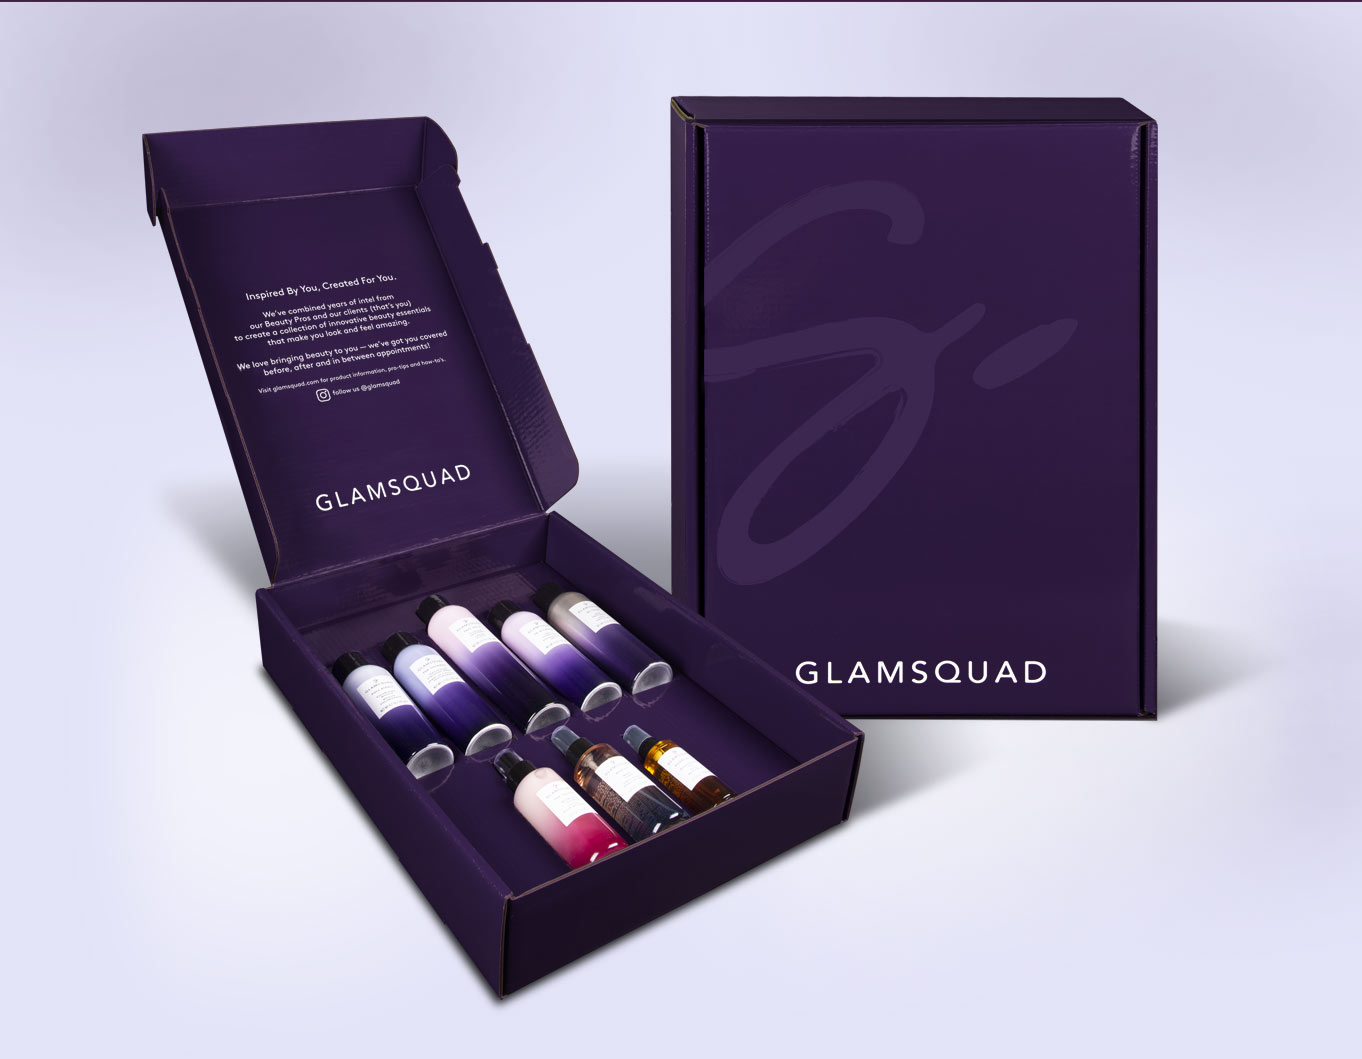 glamsquad luxe product launch